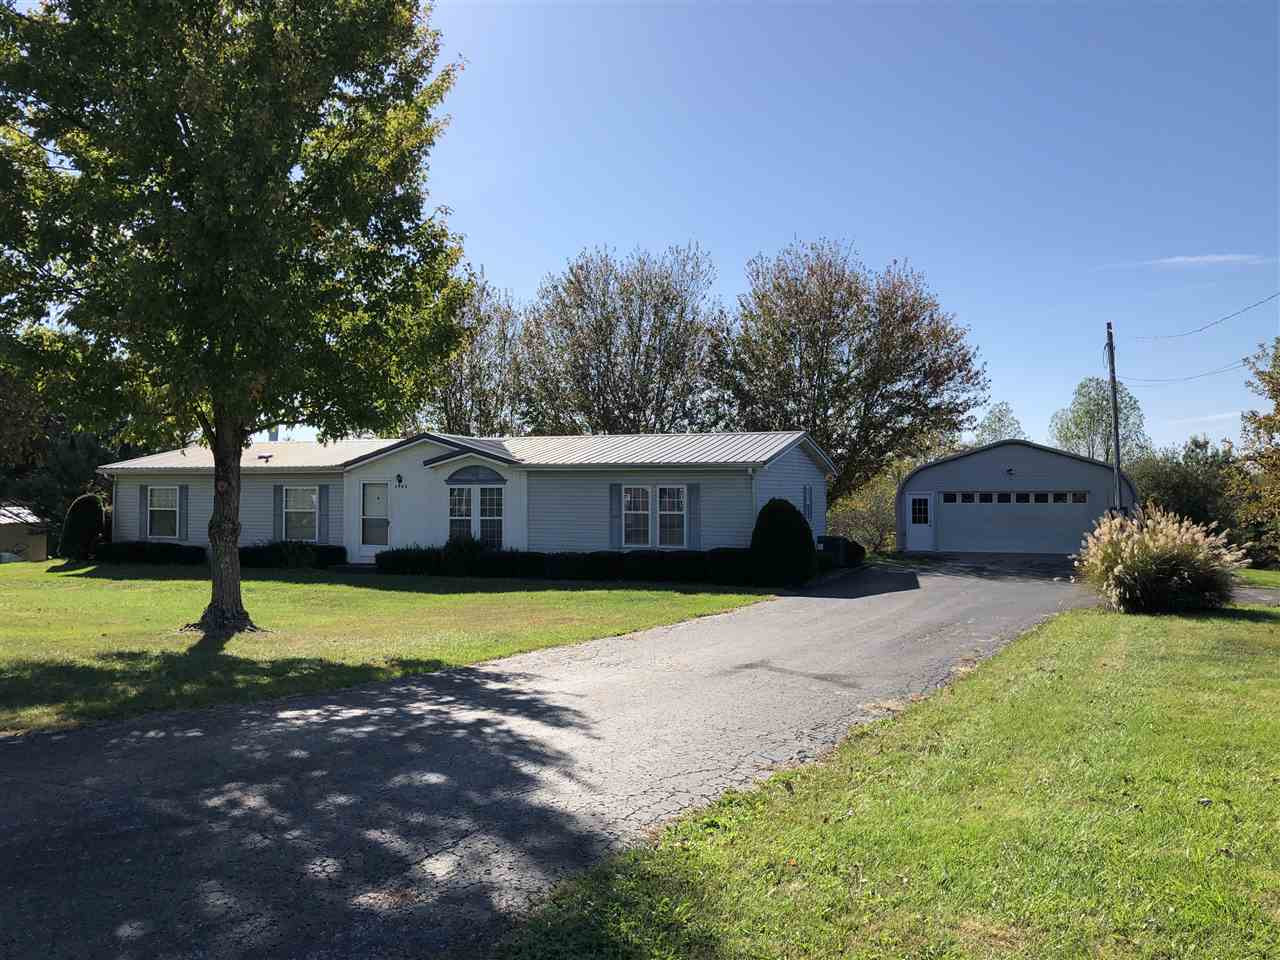 Photo 3 for 3505 Greenville Dr Dry Ridge, KY 41035